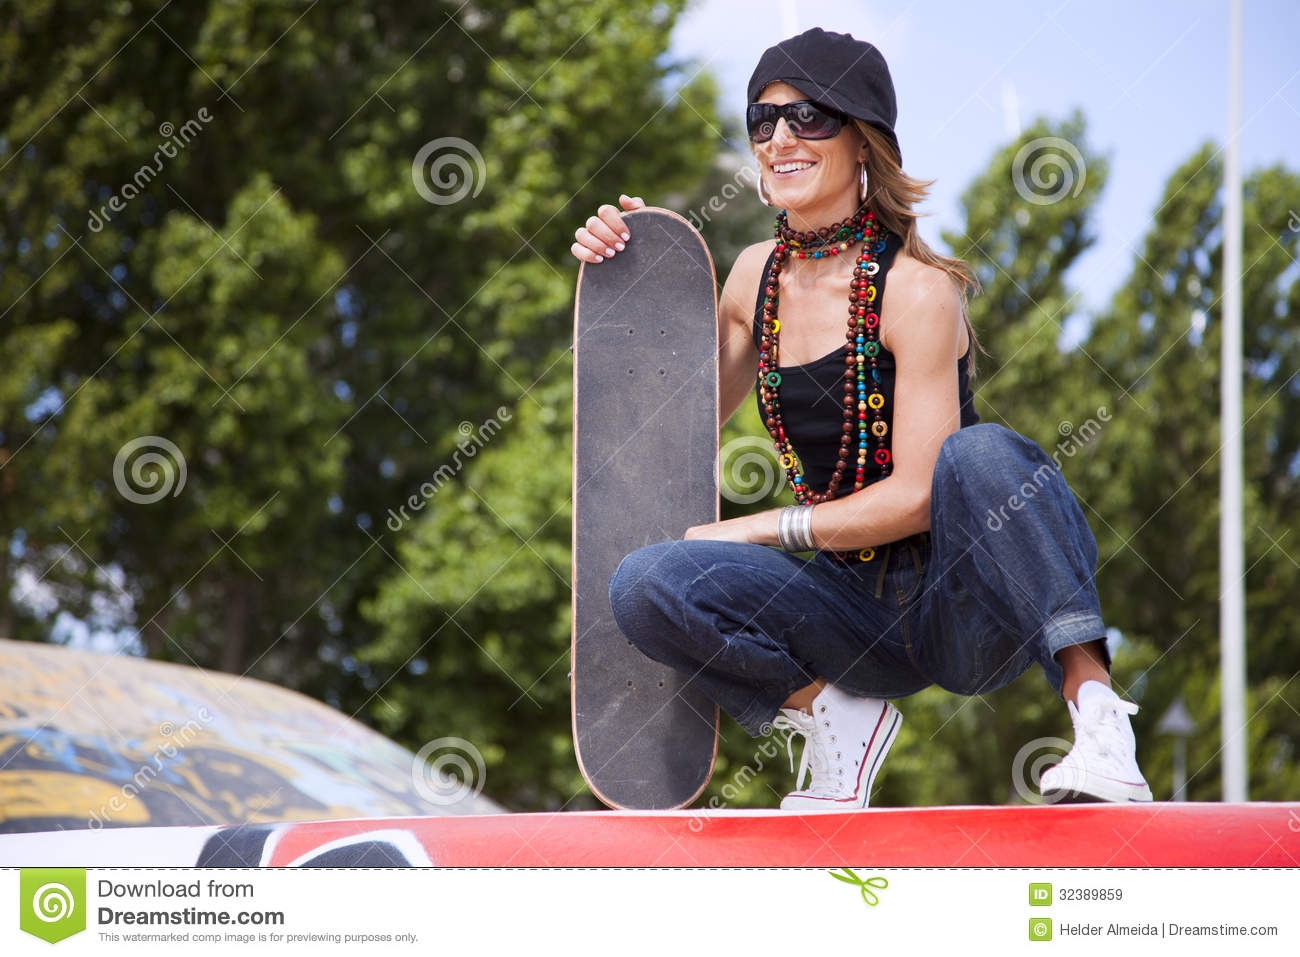 Dallas women seeking men skate